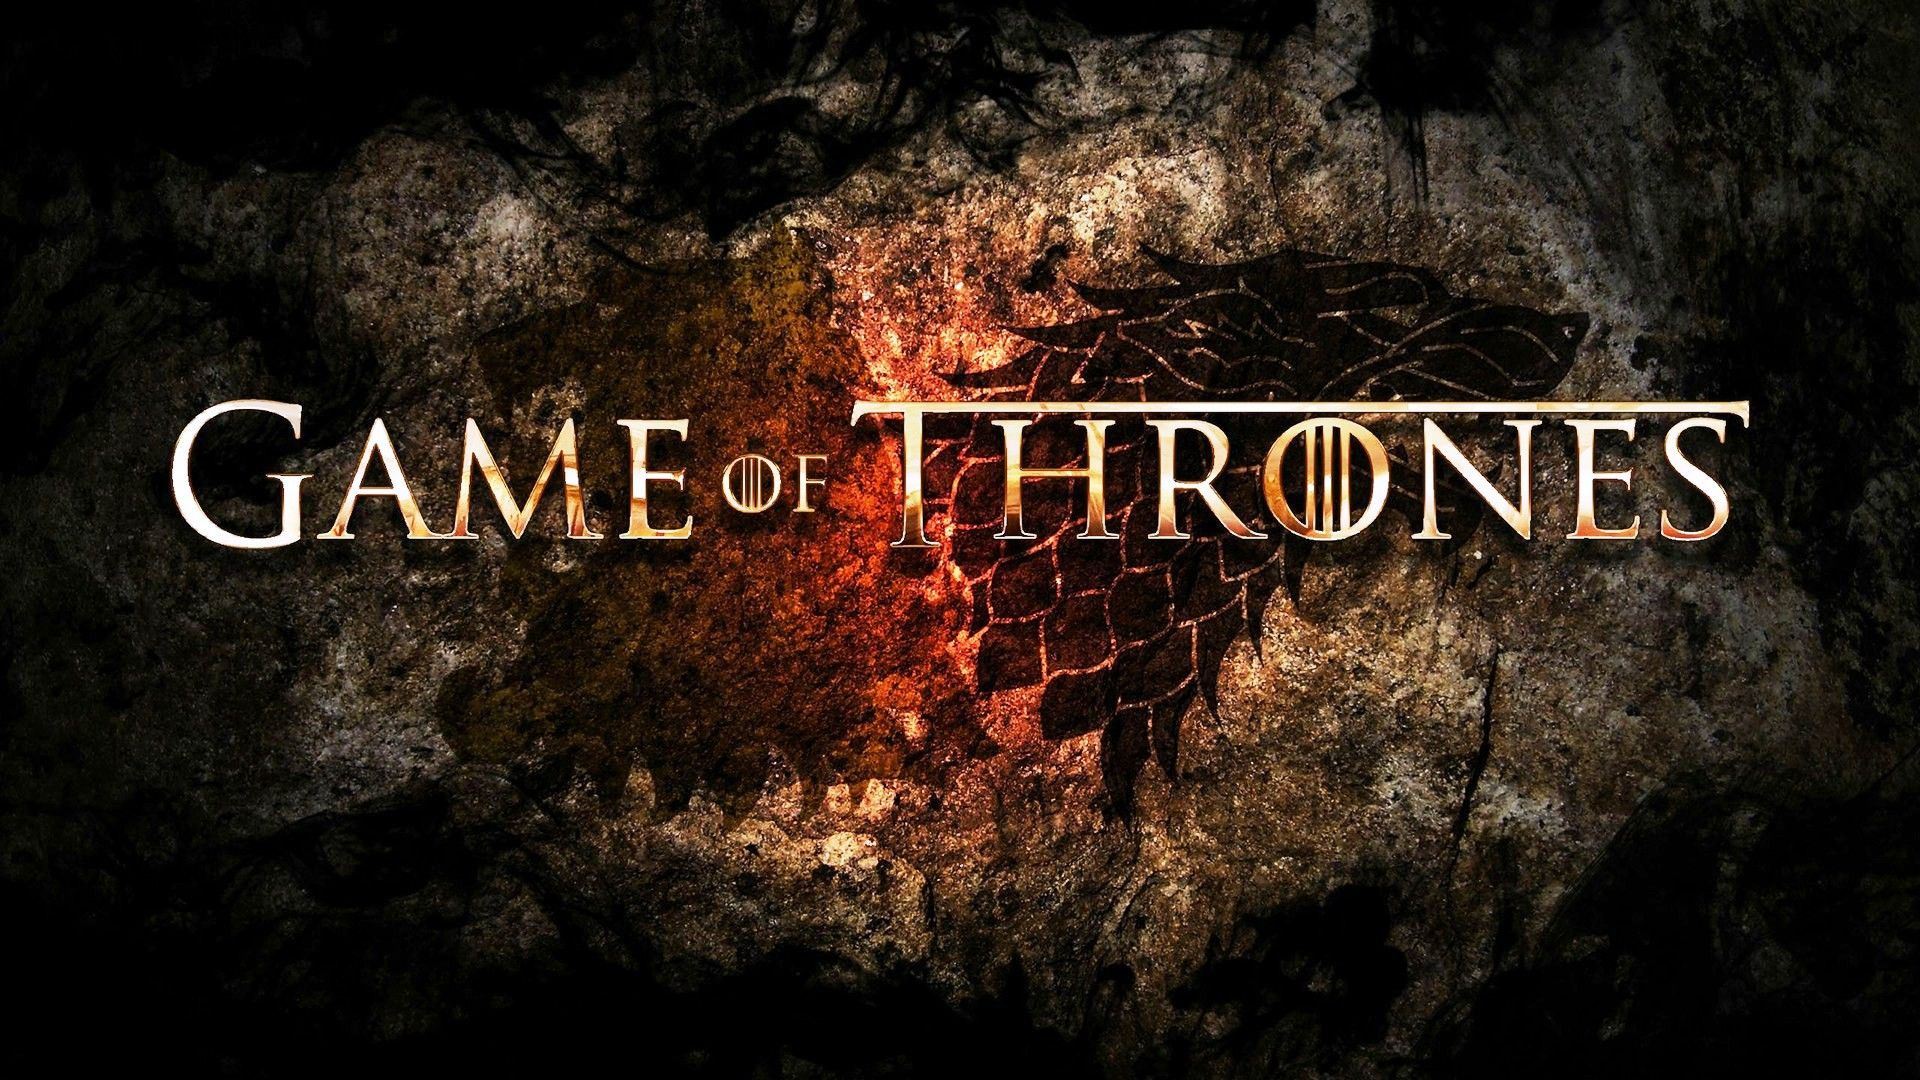 Hd Backgrounds Game Of Thrones Best Movie Poster Wallpaper Hd Watch Game Of Thrones Game Of Thrones Theme Game Of Thrones Prequel